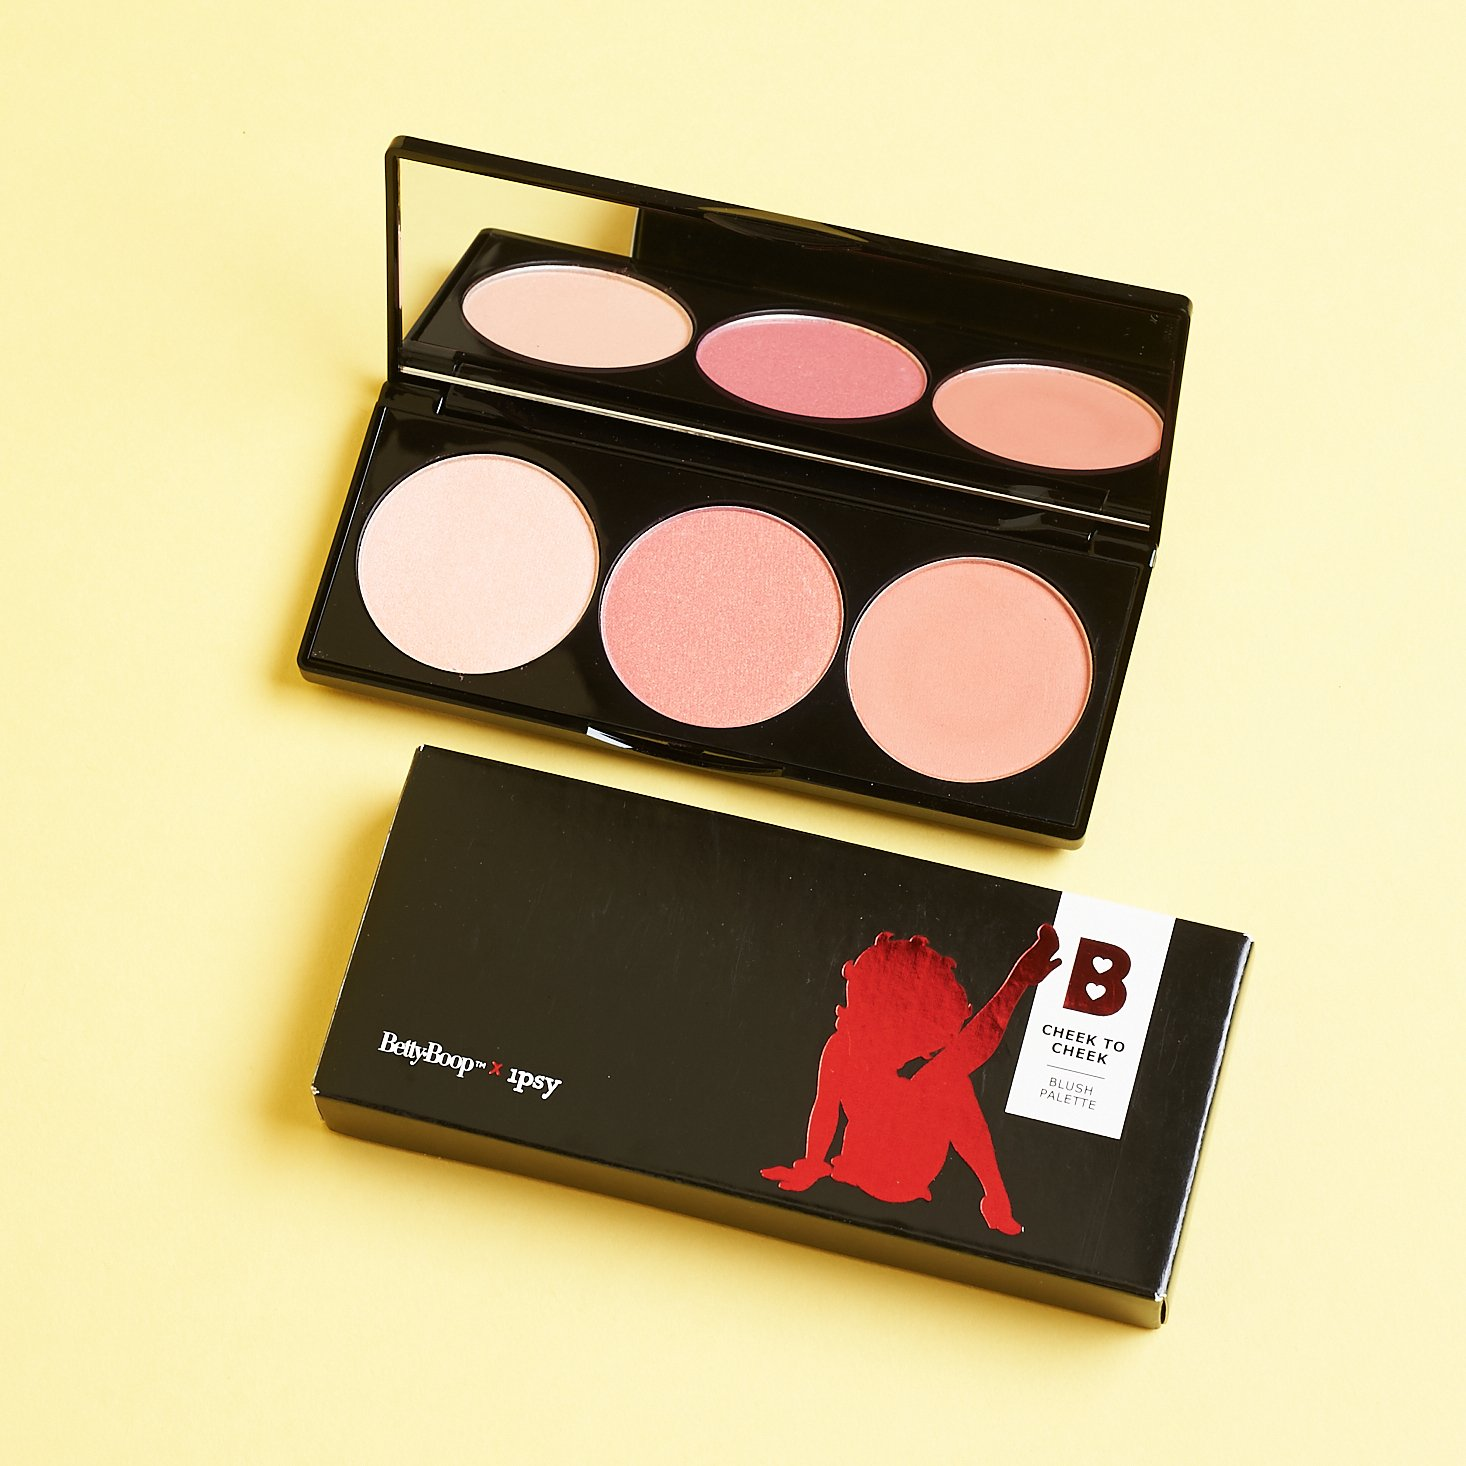 trip of betty boop blushes